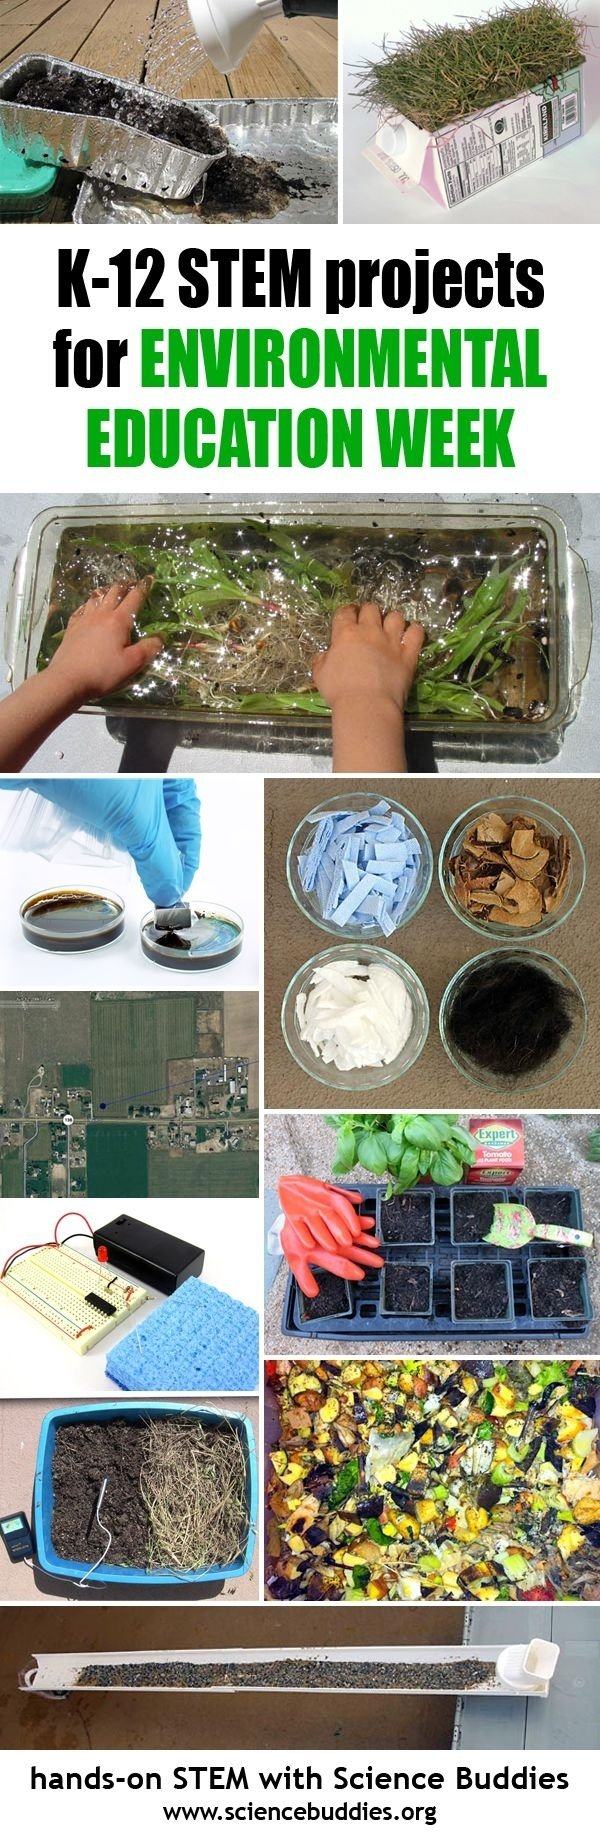 10 Pretty Science Buddies Science Fair Ideas 727 best k 12 science project ideas images on pinterest lesson 1 2020